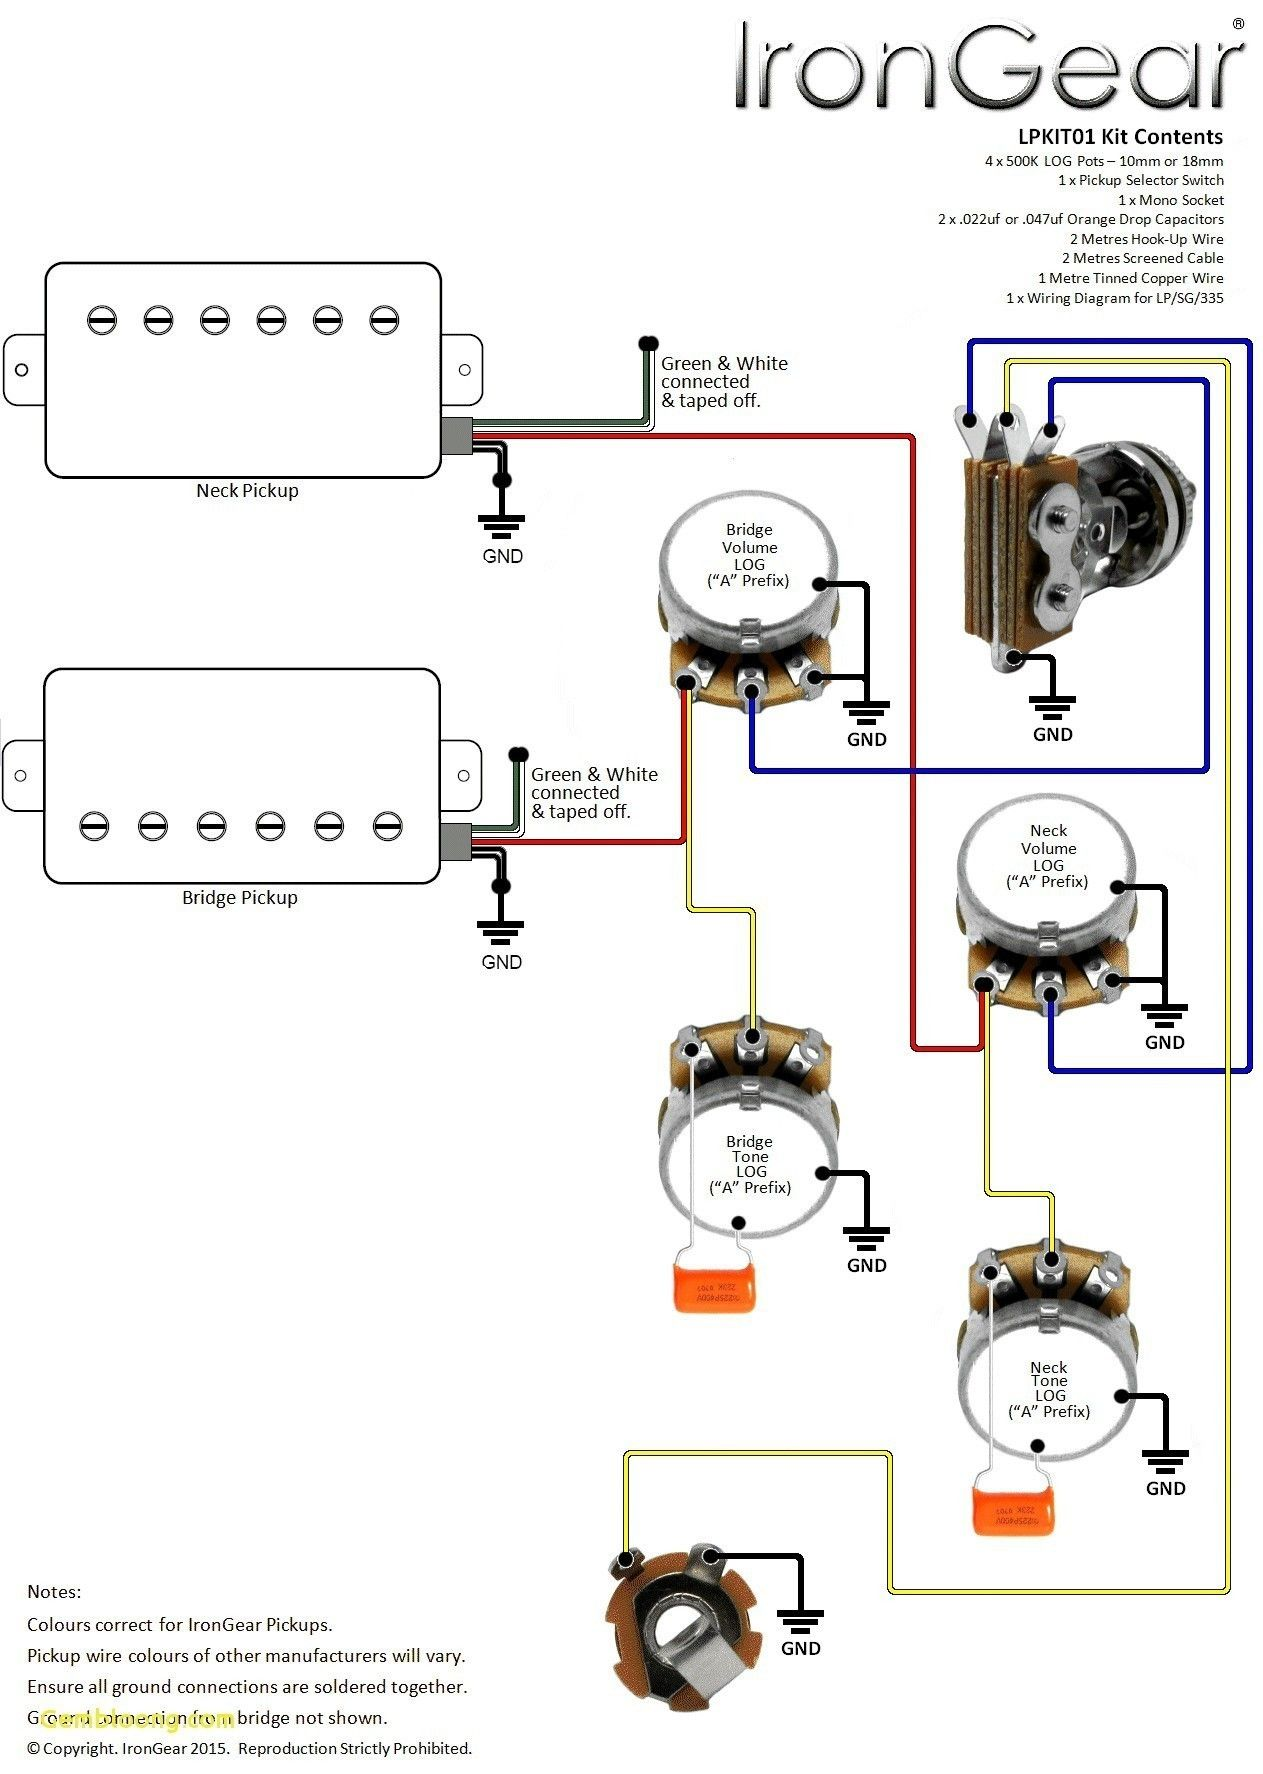 hight resolution of unique gibson sg faded wiring diagram diagram diagramsample diagramtemplate wiringdiagram diagramchart worksheet worksheettemplate